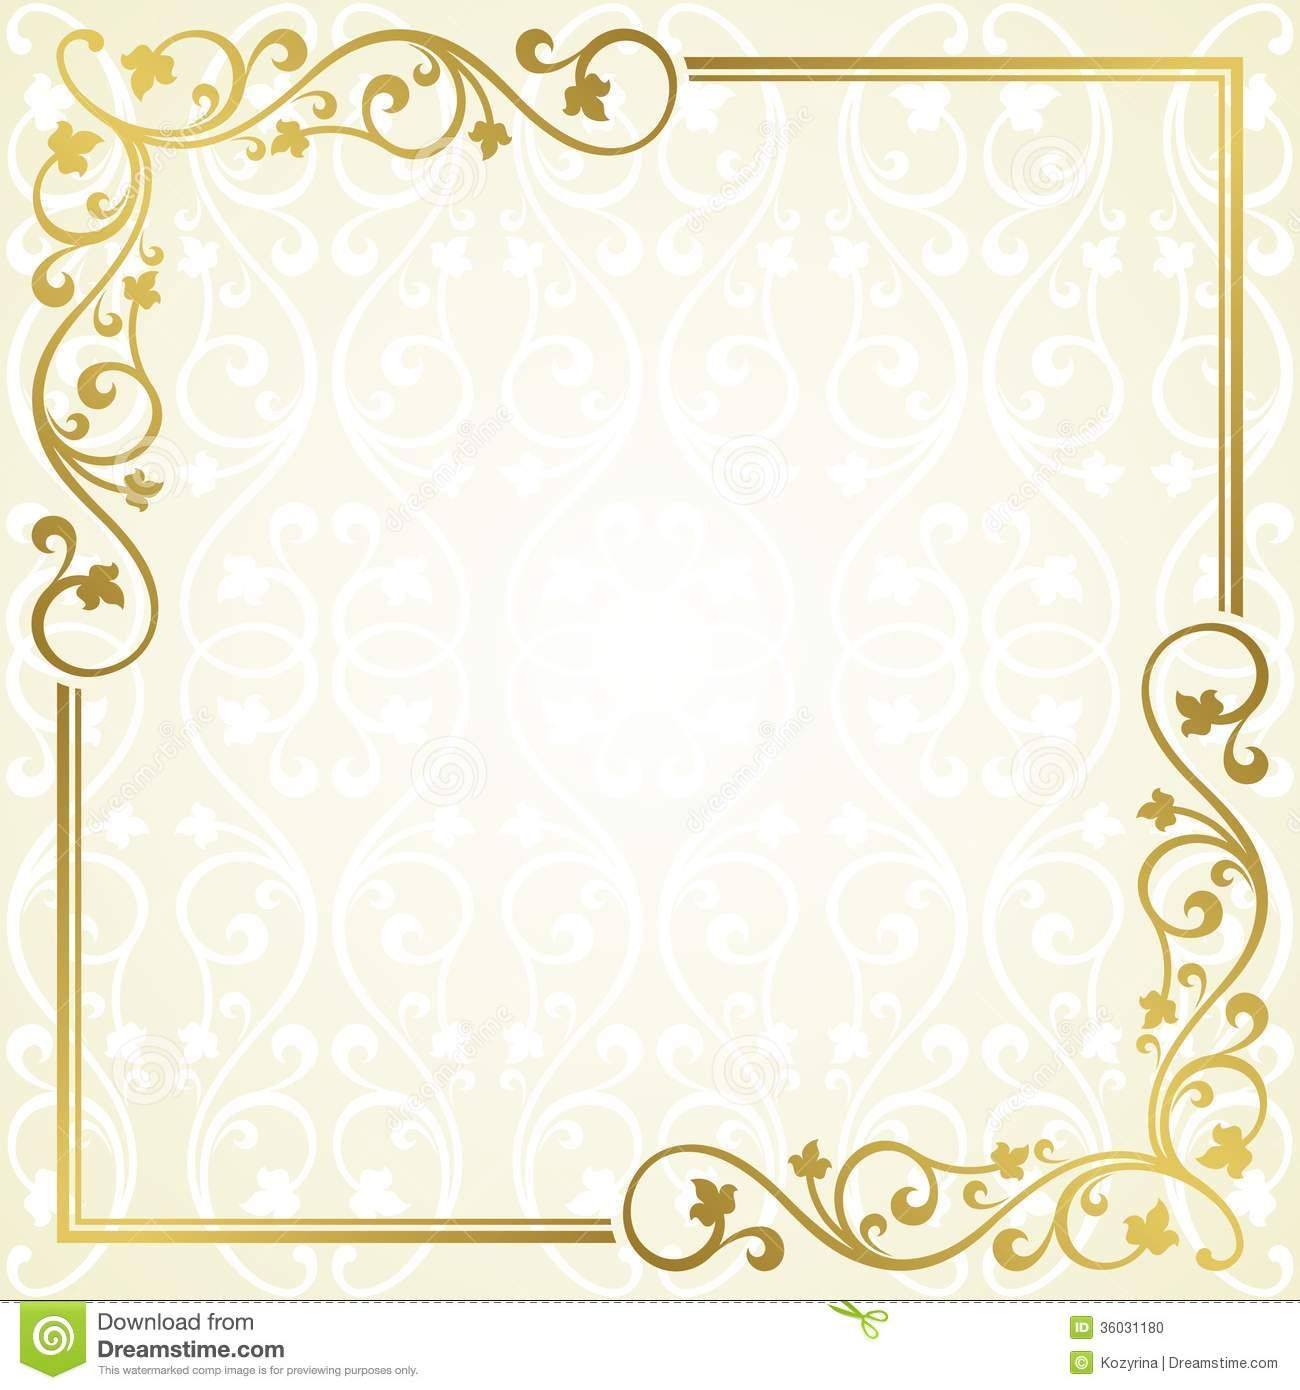 3 Inspiring Marriage Invitation Card Background Images em 3